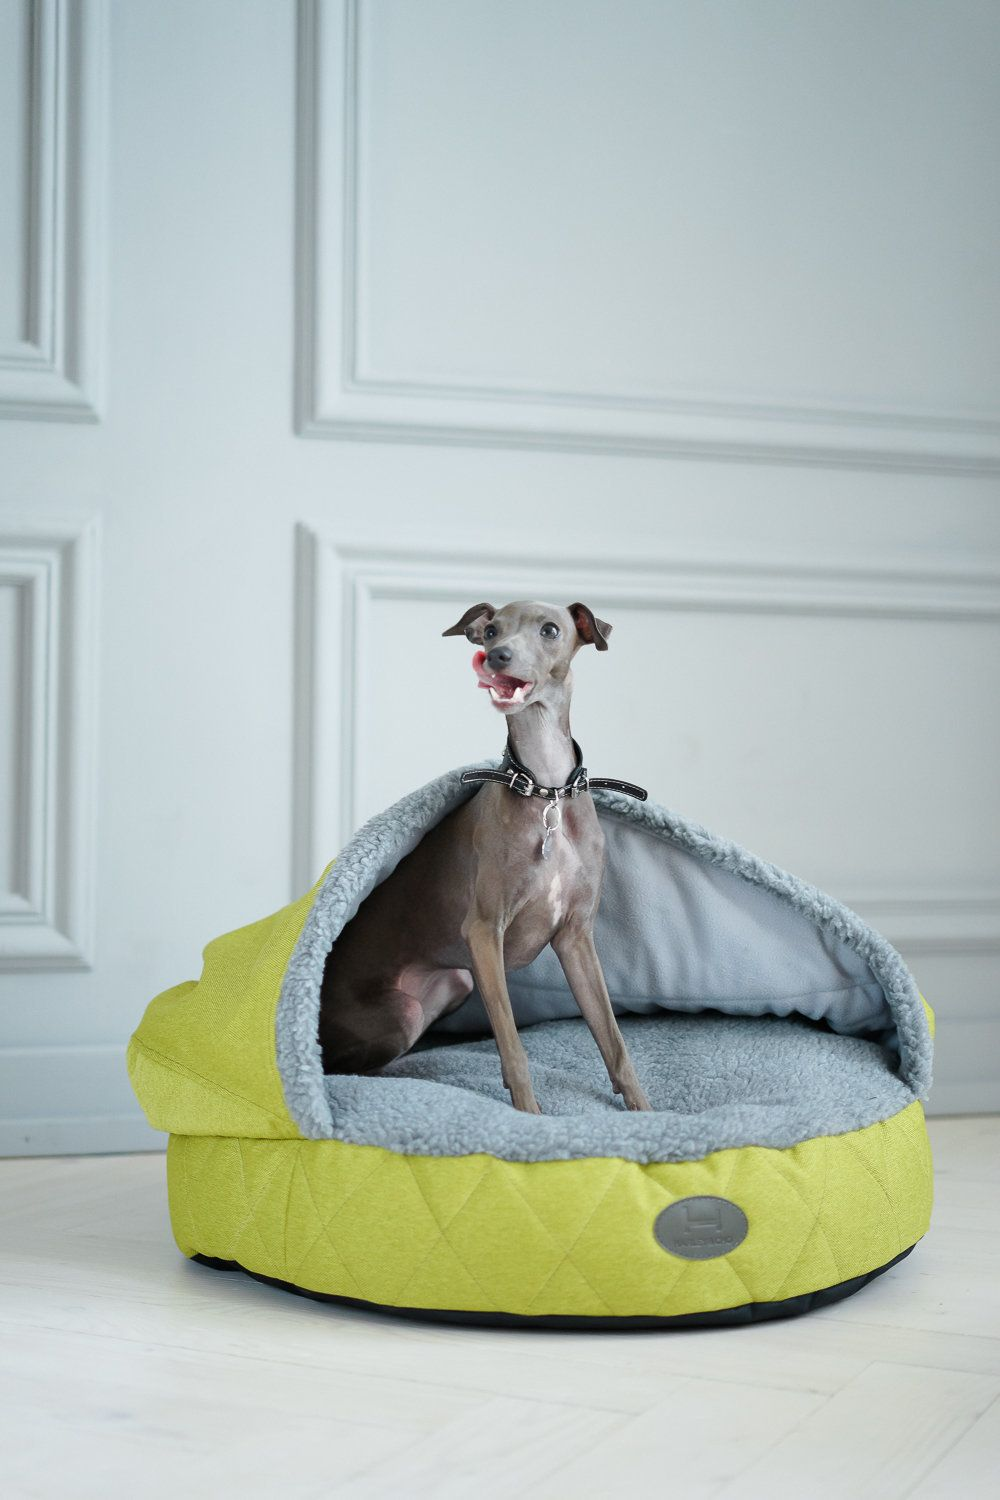 Dog Cave Bed Green Floor Pillow For Short Haired Dogs Beds With Cover And Grey Faux Fur Italian Greyhound Sleeping Sh Dog Pet Beds Dog Bed Hooded Dog Bed